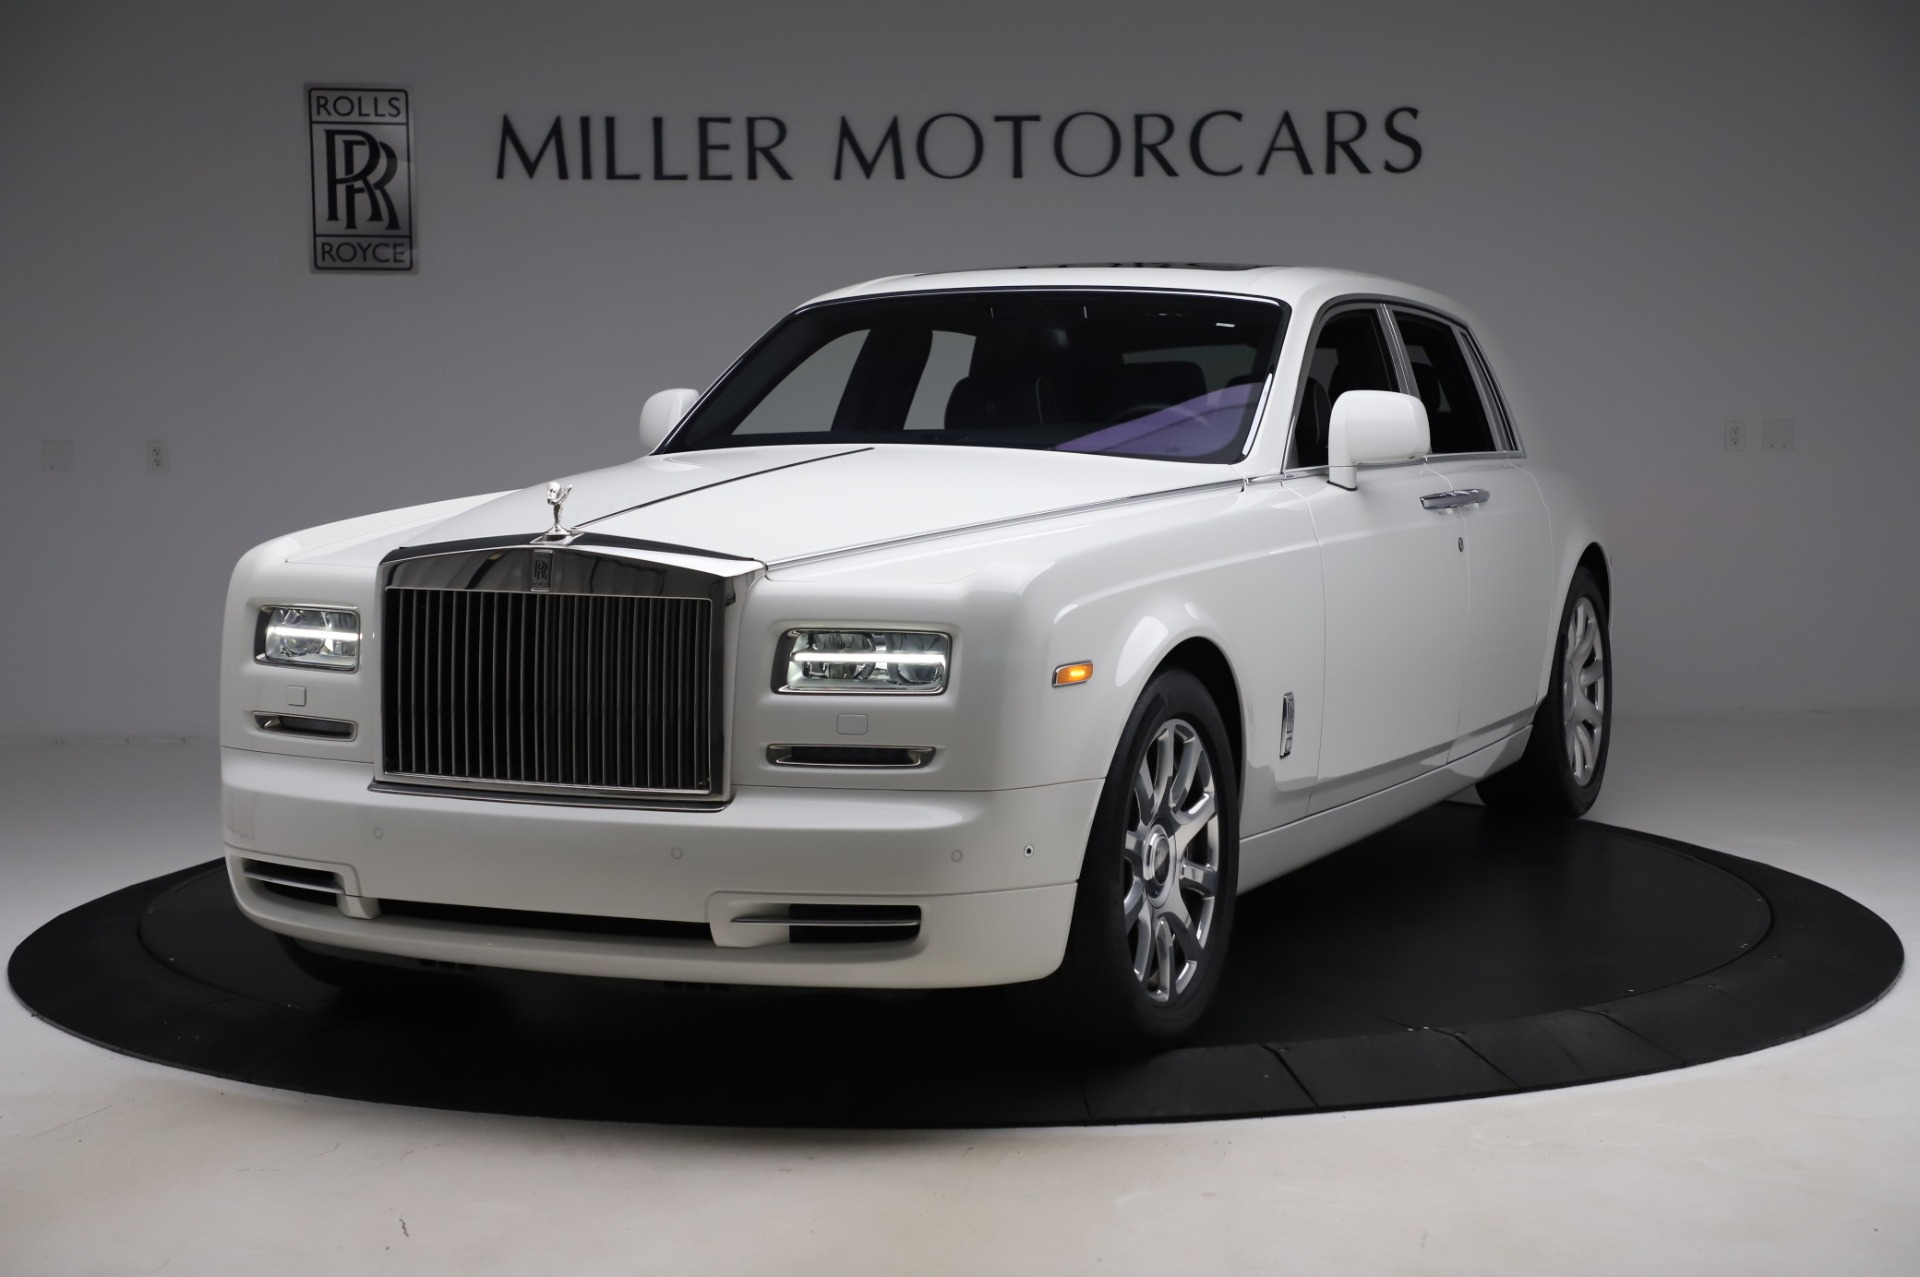 Used 2014 Rolls-Royce Phantom for sale $199,900 at Aston Martin of Greenwich in Greenwich CT 06830 1